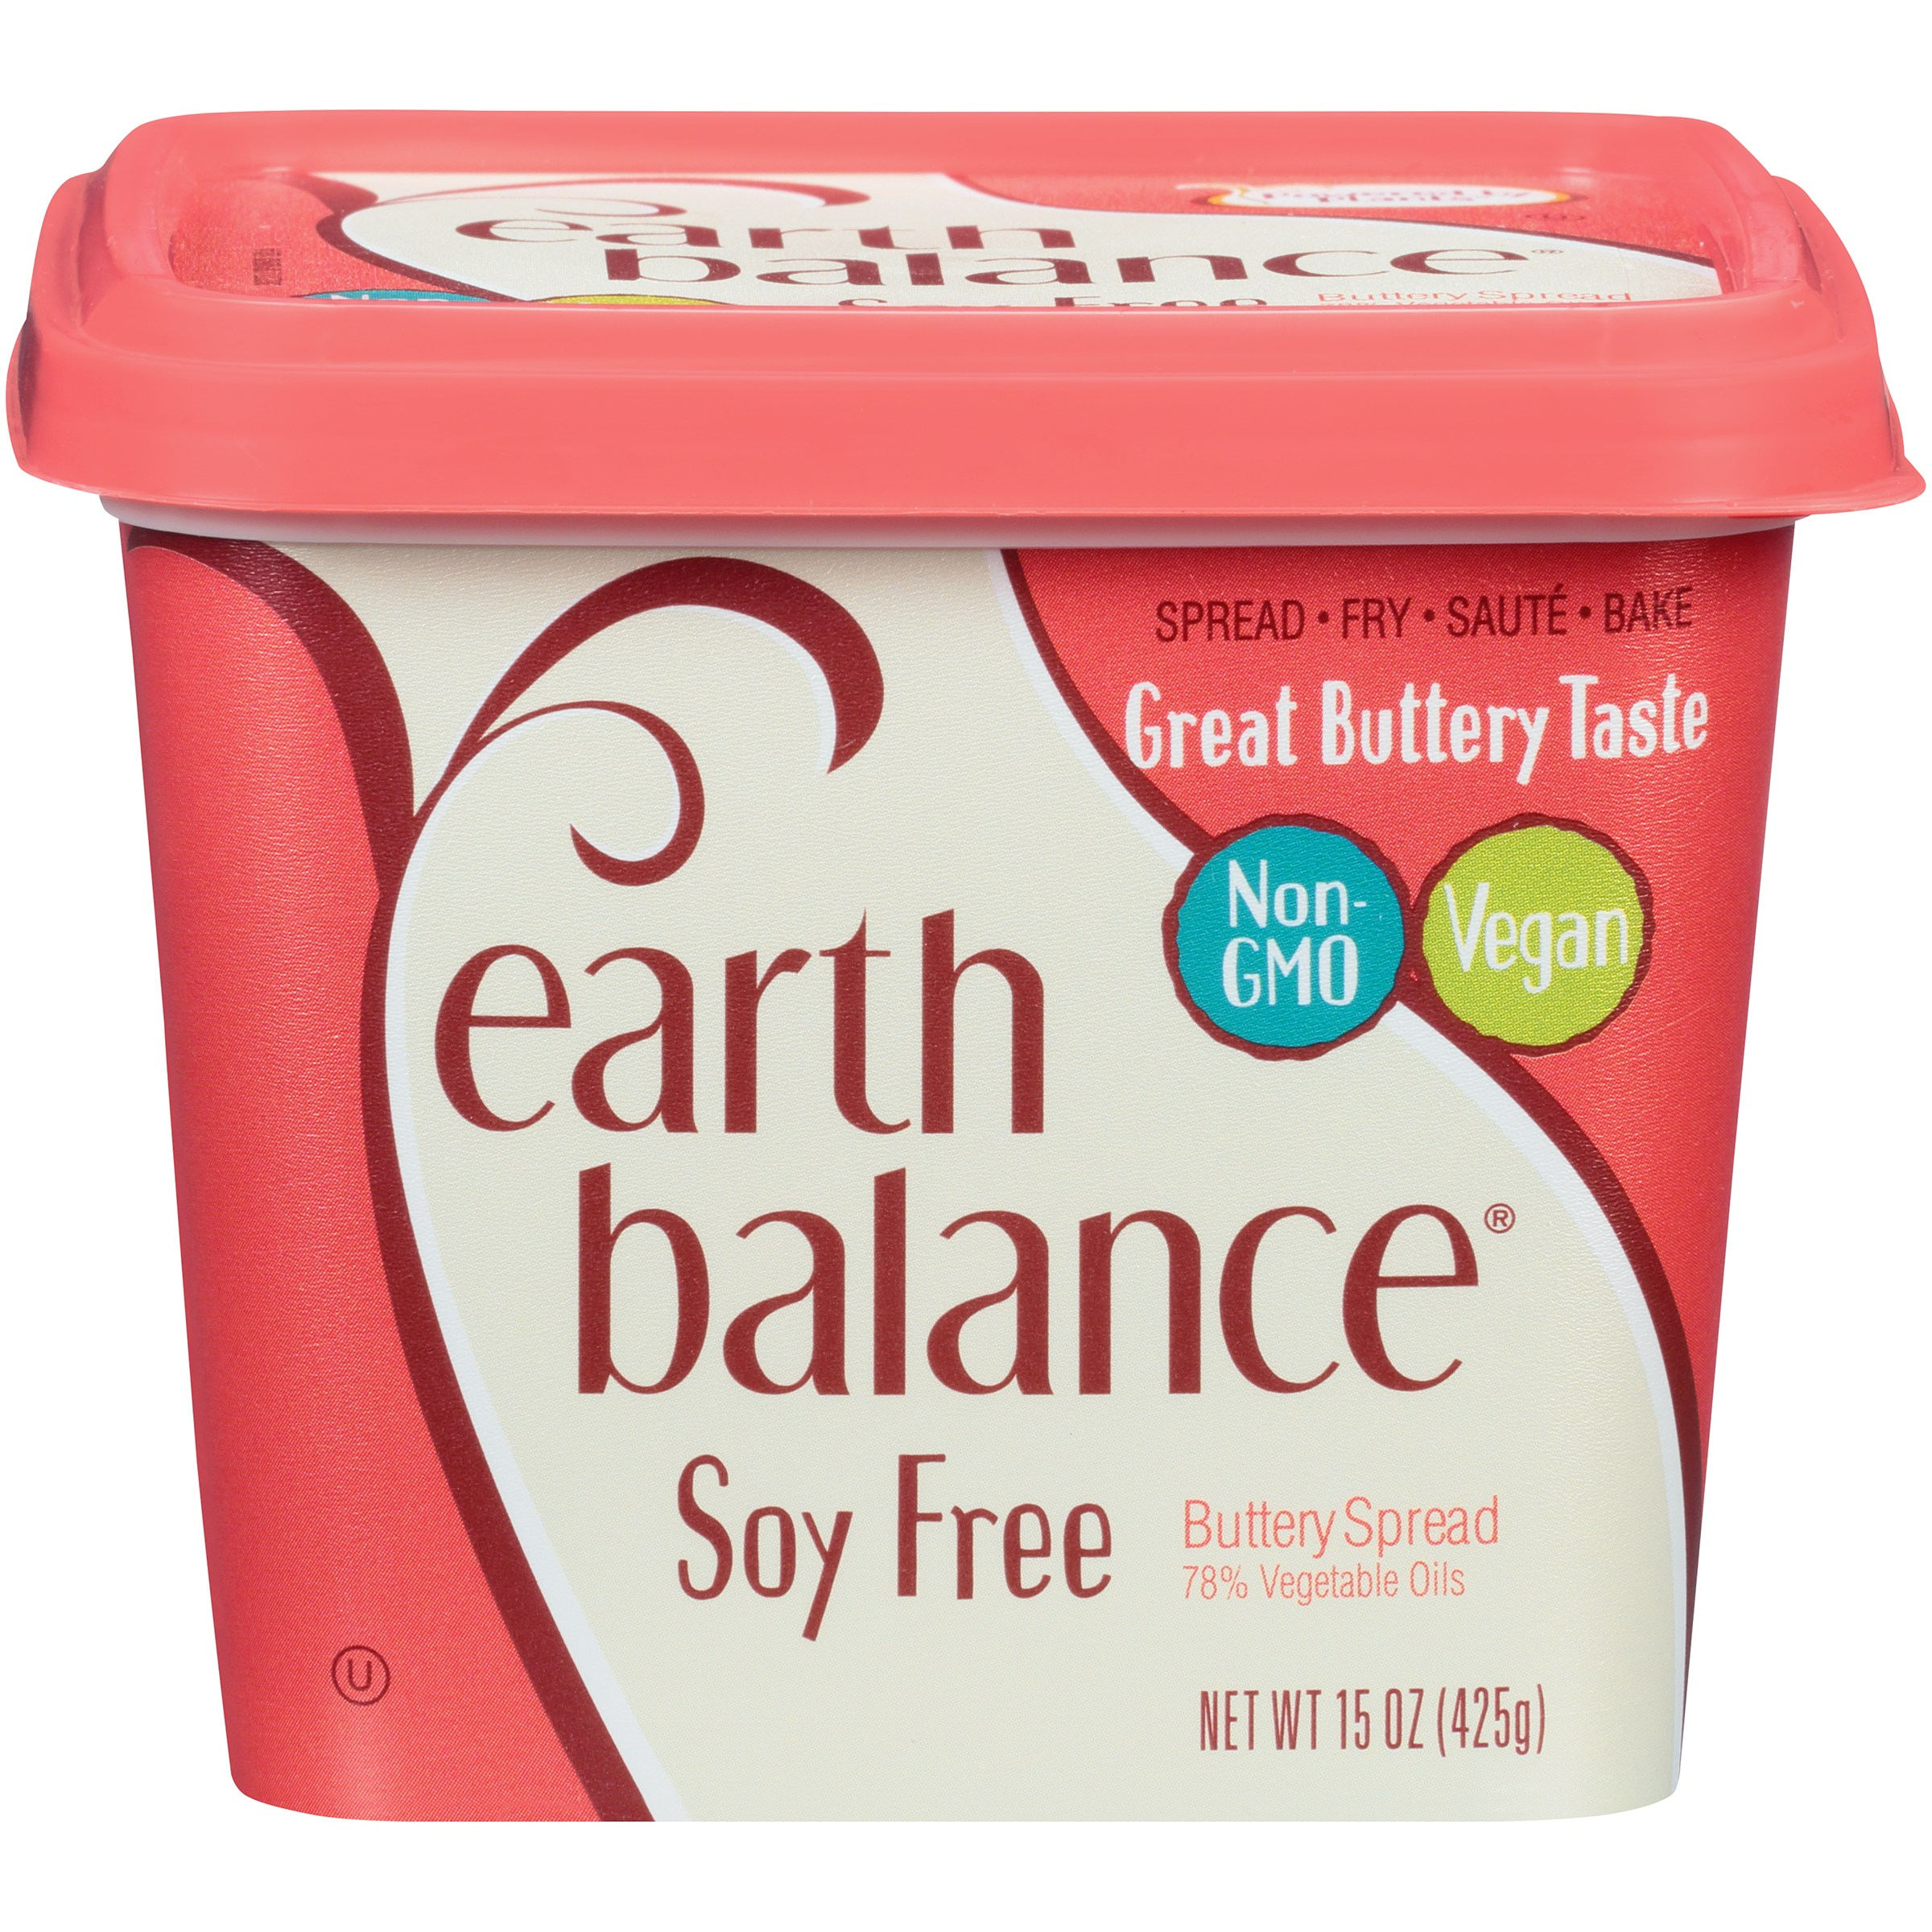 earthbalance-soyfree.jpeg